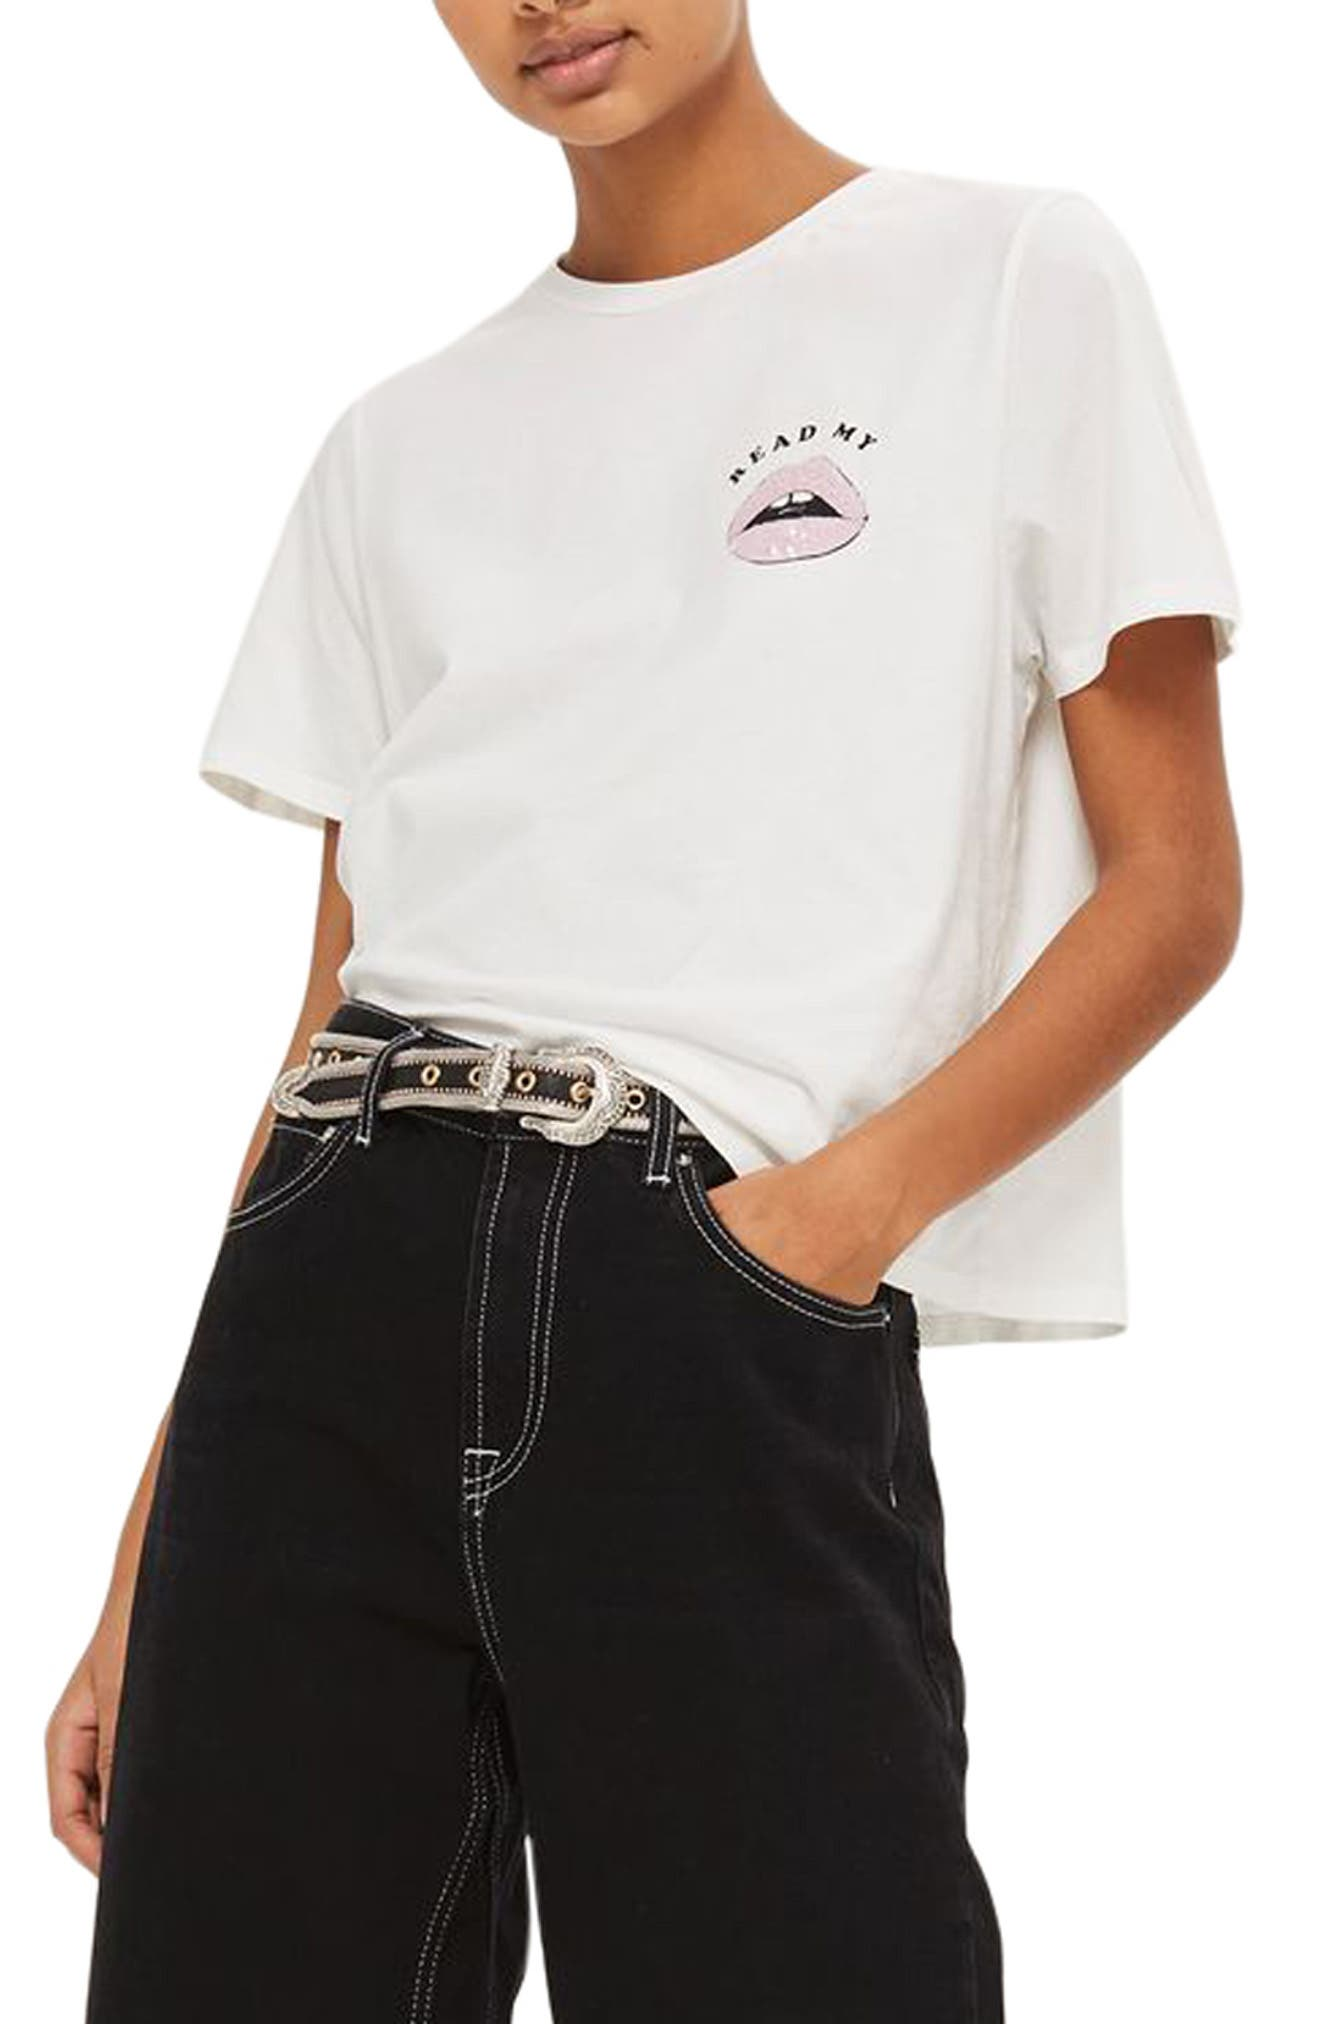 Read My Lips Graphic Tee,                         Main,                         color, White